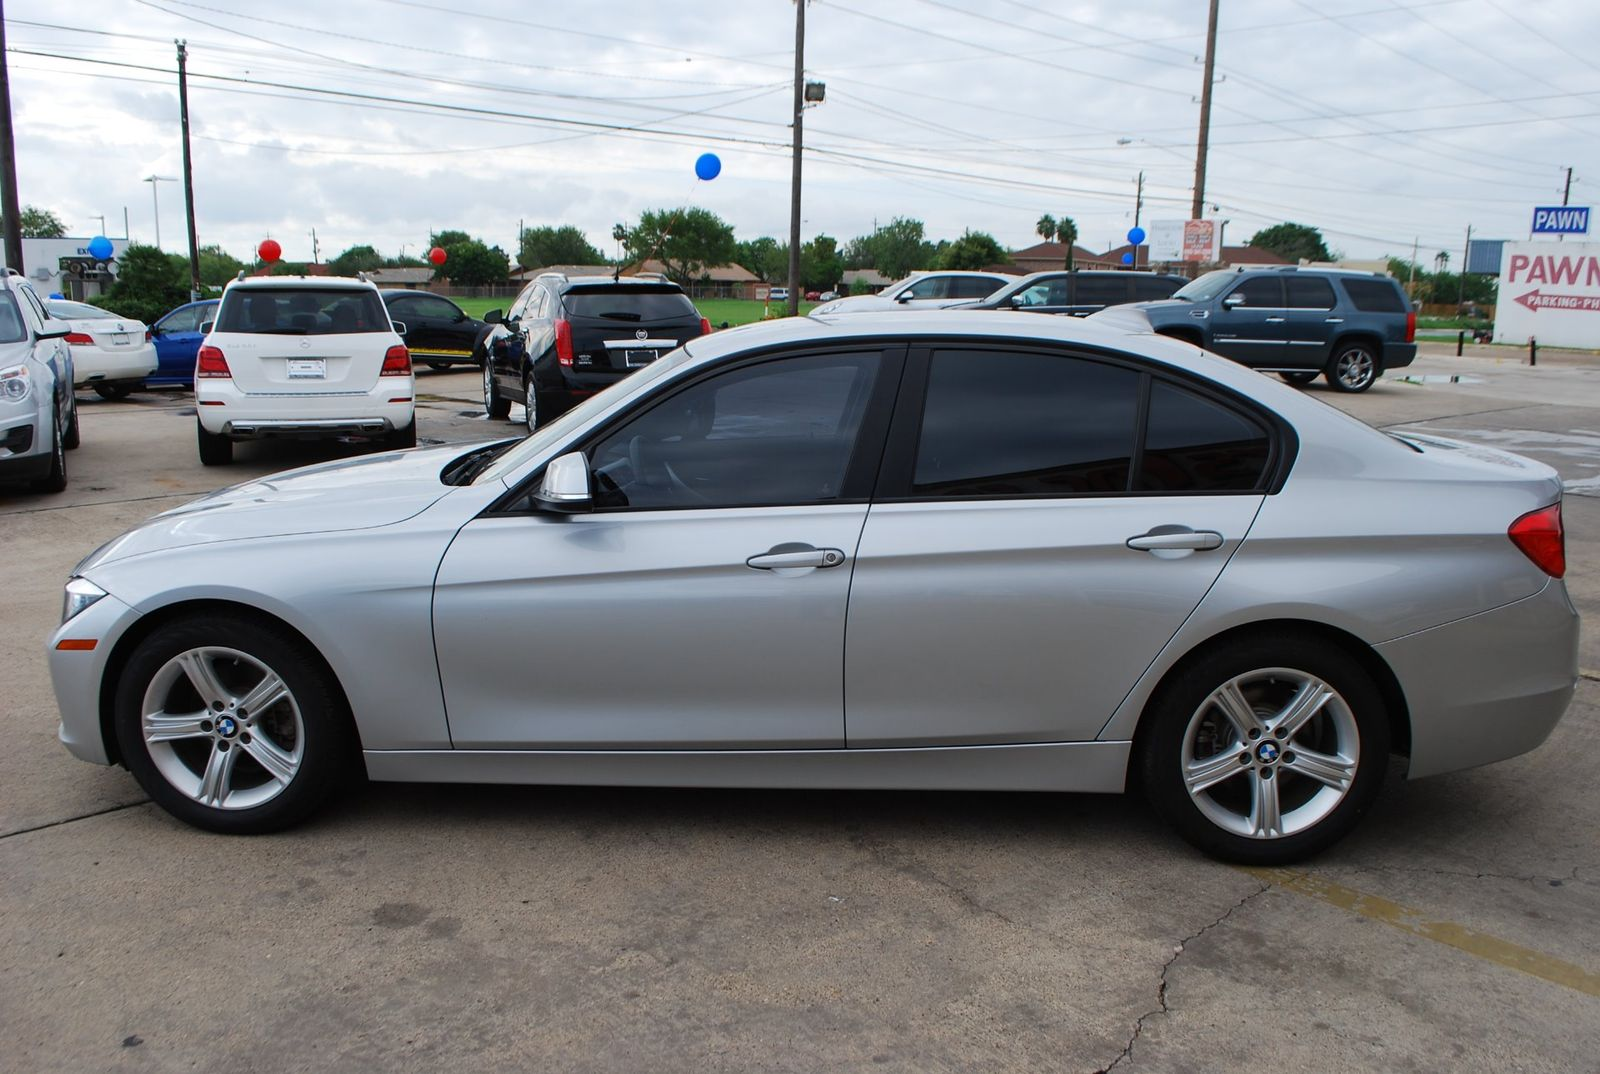 Craigslist Brownsville Tx Free Stuff >> Cheap Cars In Brownsville Tx.100 [ I ] Bmw 320i 2014 Sport Line 2 0 In . The Whittington ...